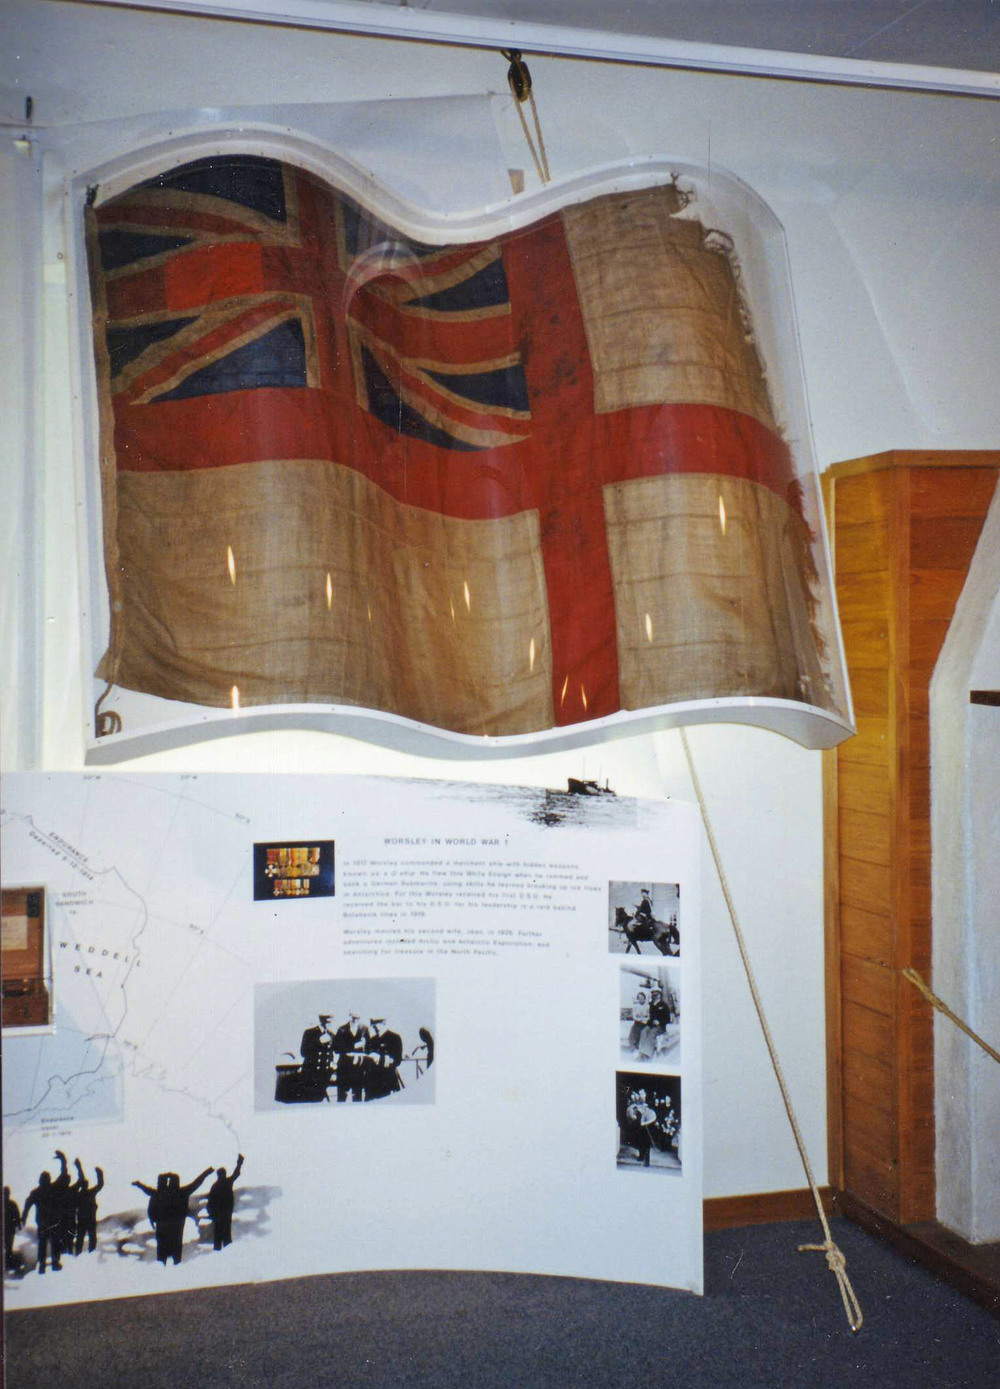 2_Worsley ensign.JPG